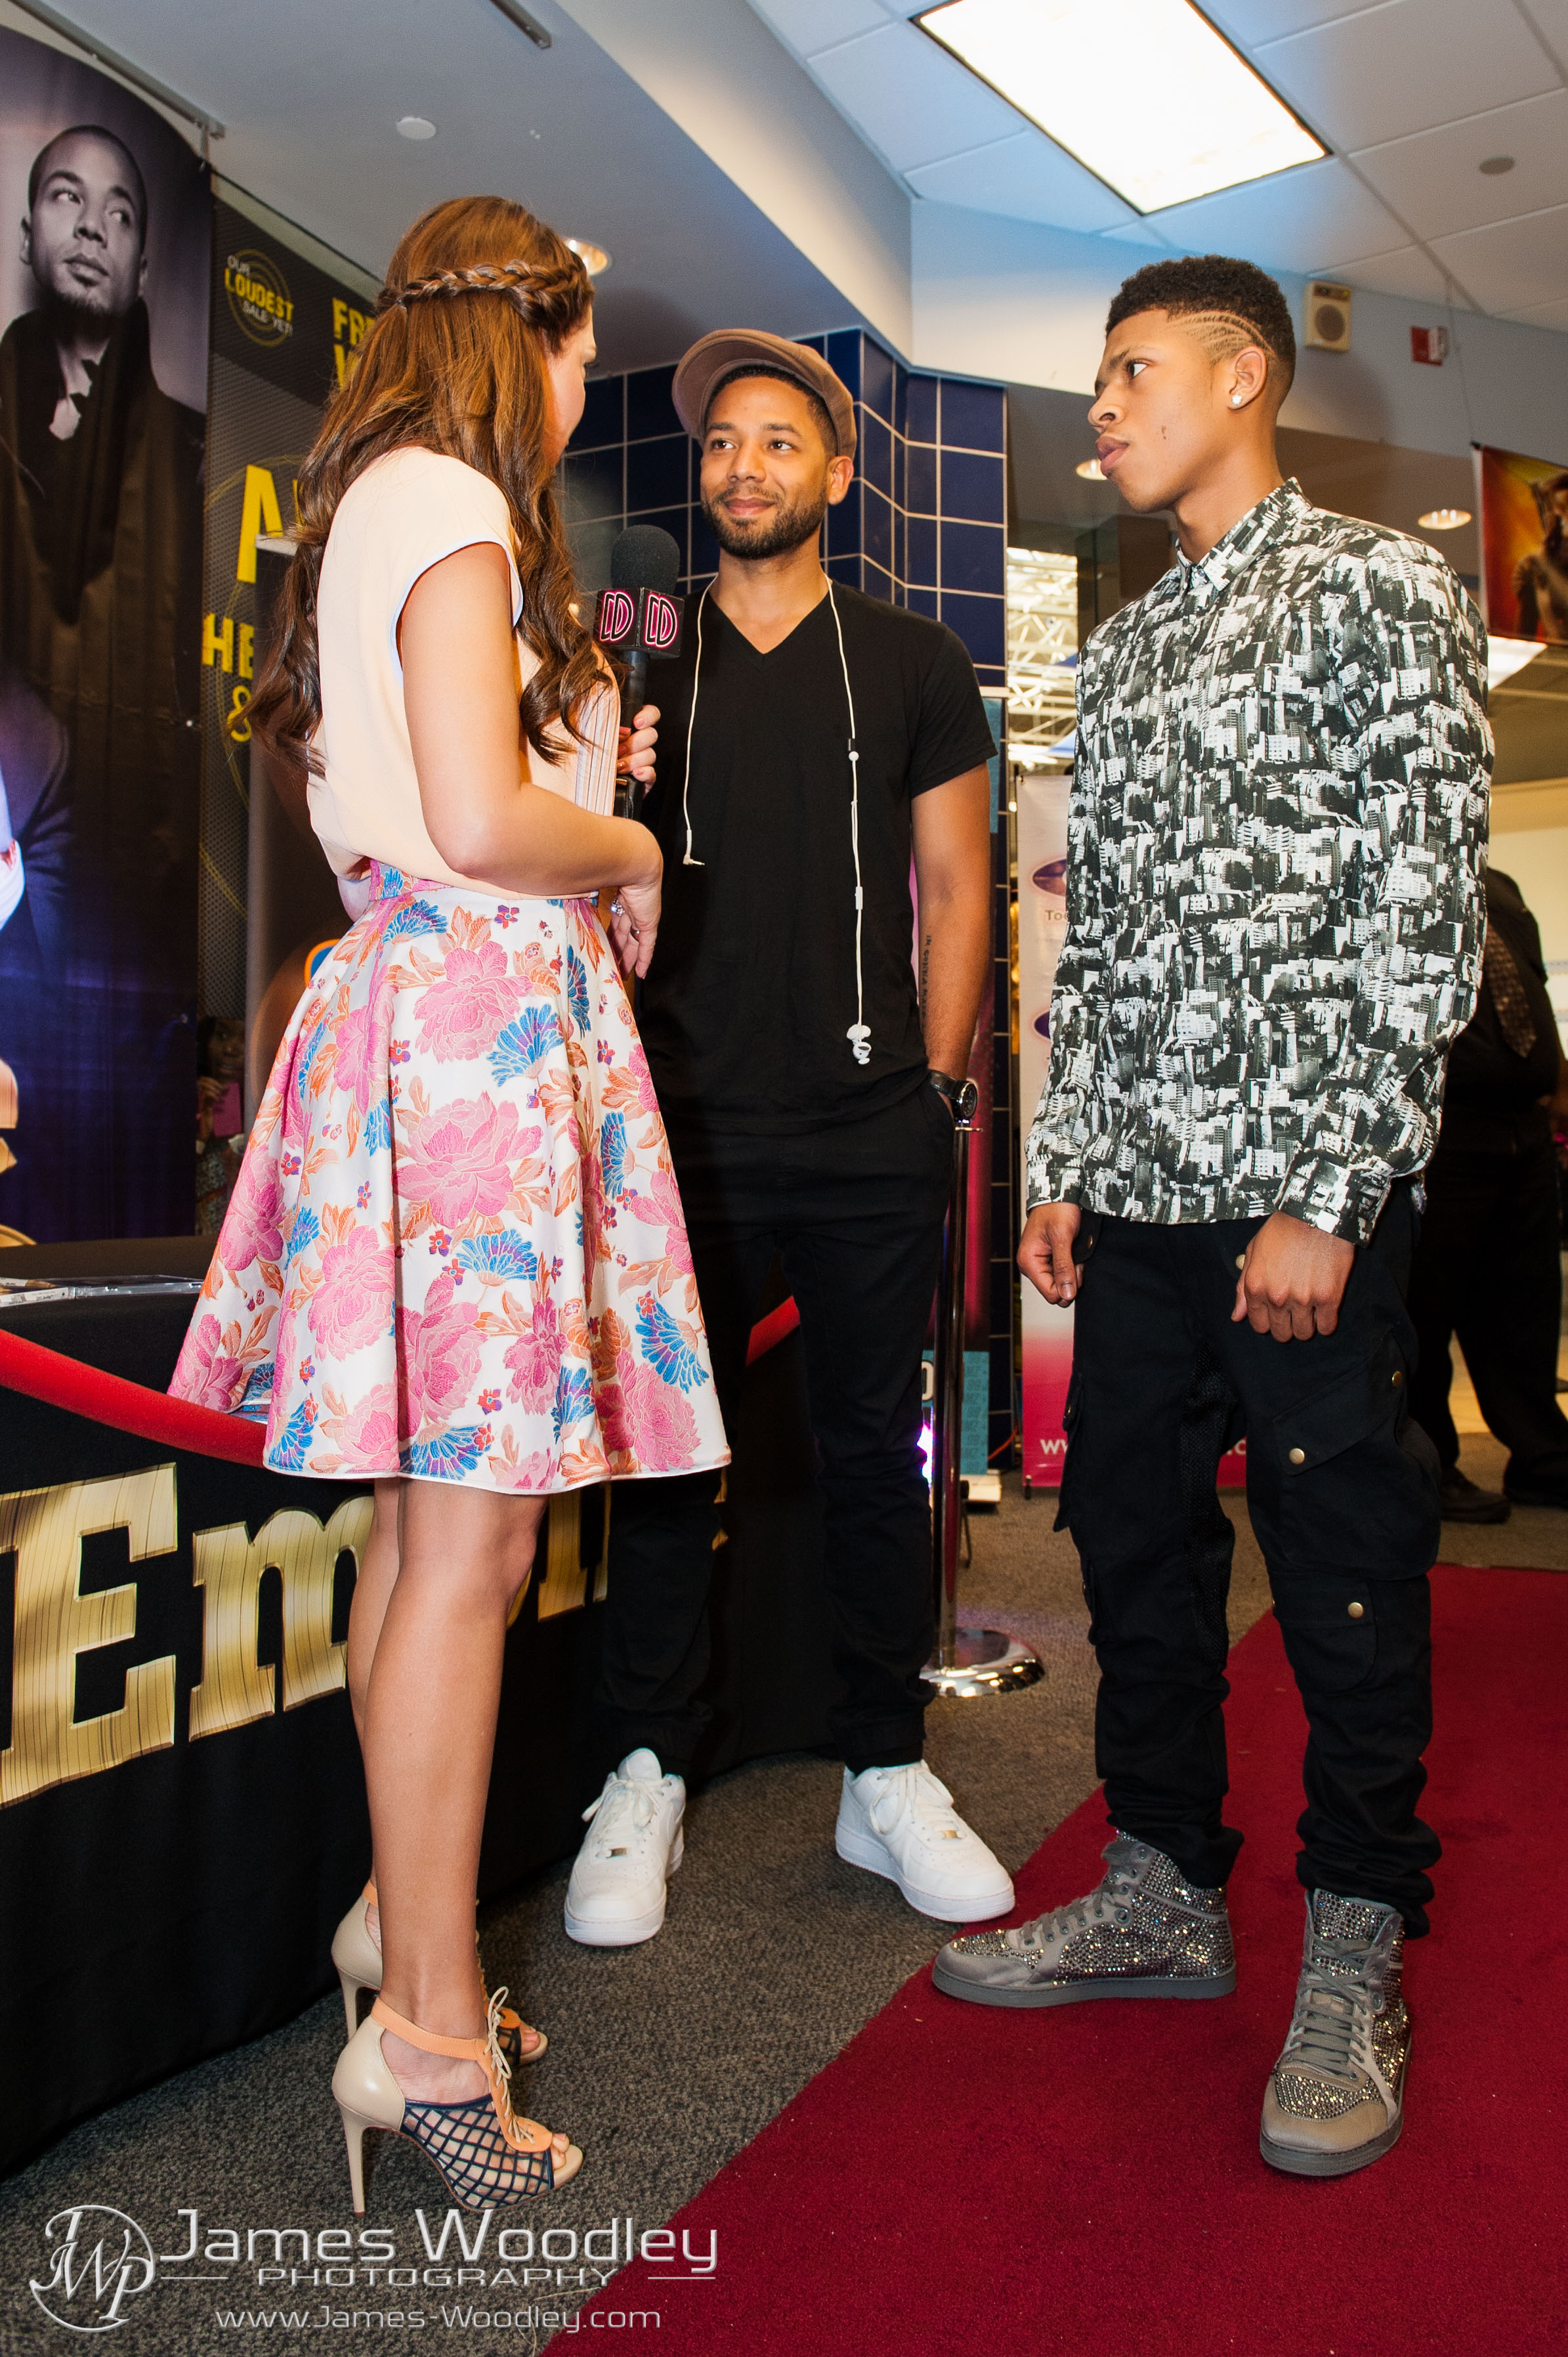 jamal empire dating Jussie smollett is jamal lyon in more ways than one the 31-year-old empire star came out on the ellen degeneres show after his character from the hit fox series revealed he's gay there's .